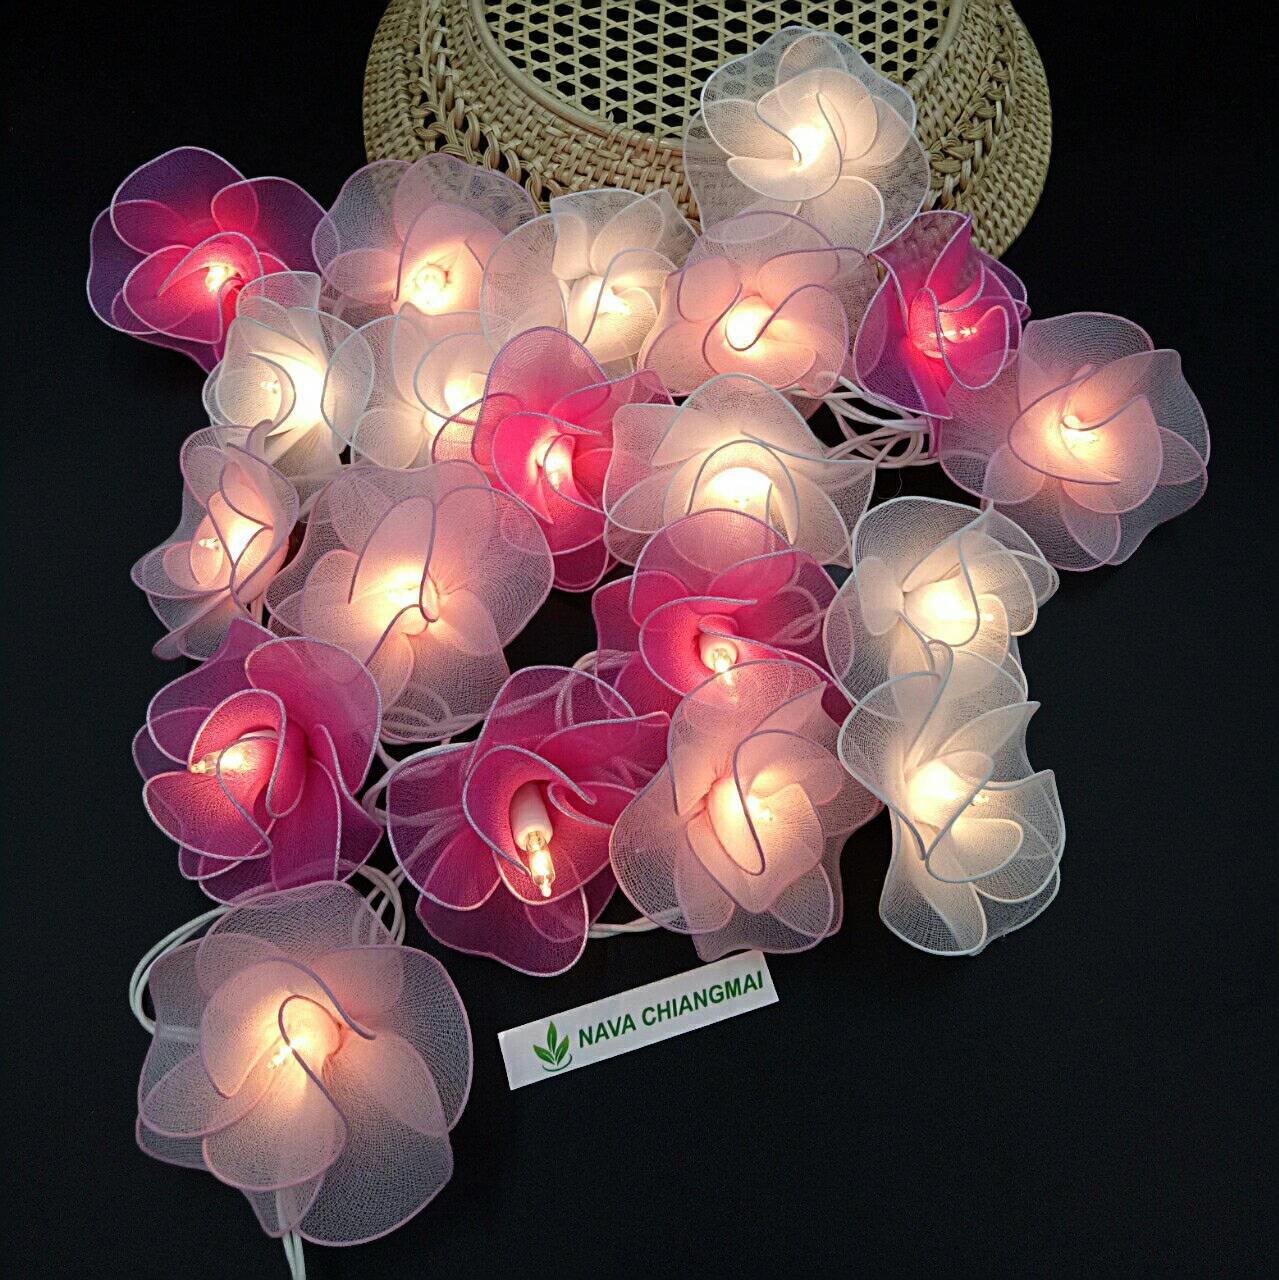 NAVA CHIANGMAI Thai Vintage 20 Flowers Romantic String Lights Plug In, Fairy Flora Decorated, Decorative Lights Wedding Gardens Party Valentine's Day Christmas Decoration (Pink & White)